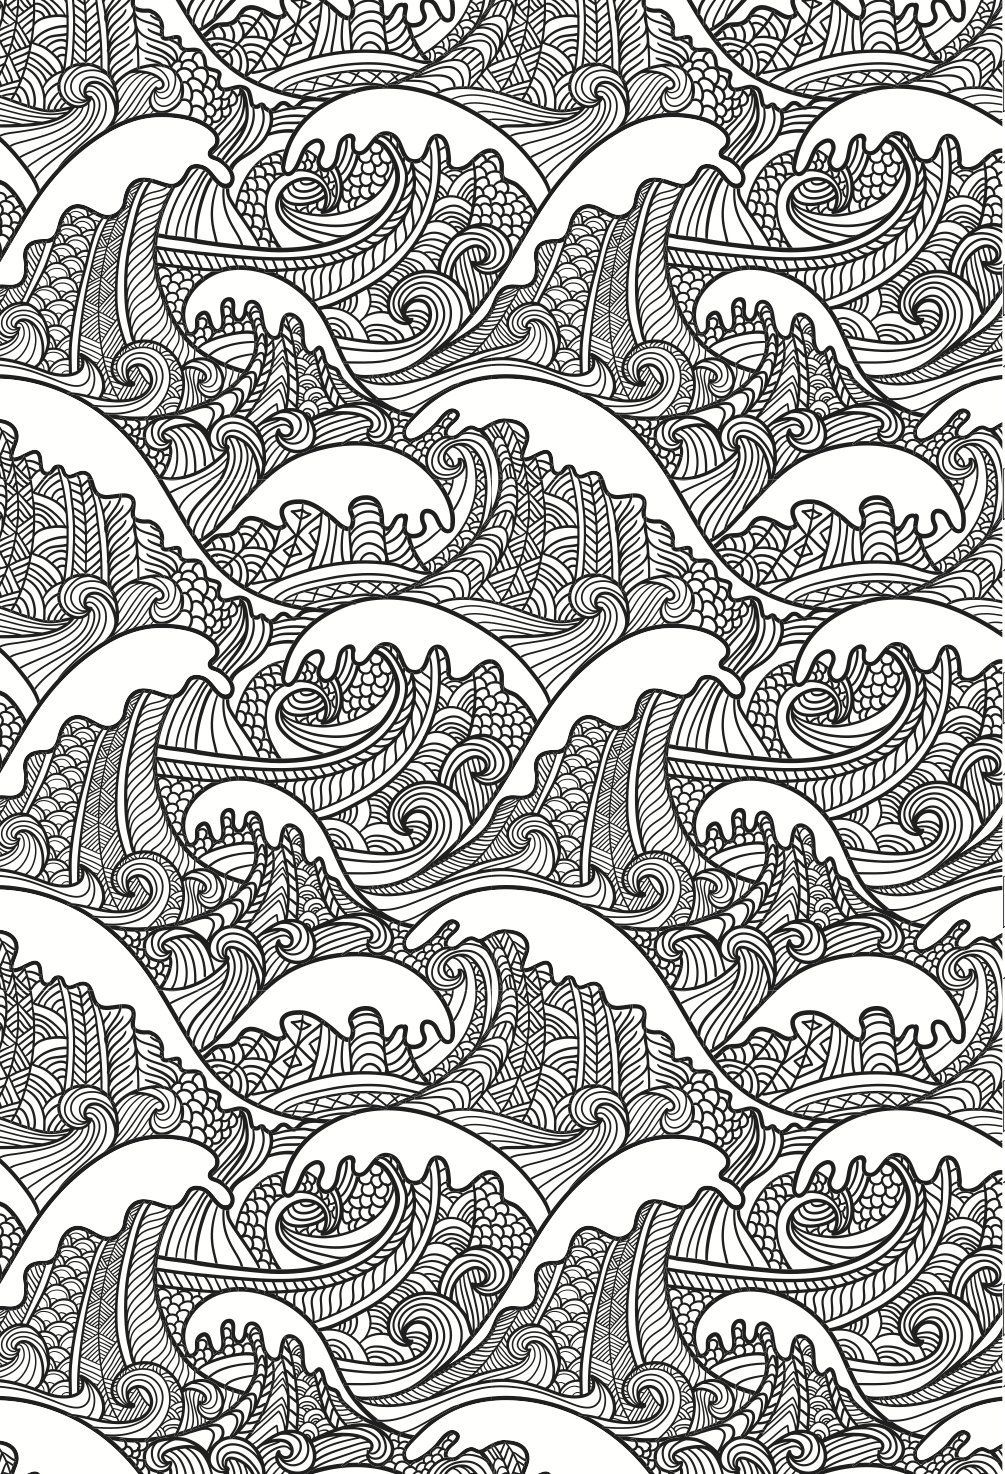 Printable coloring pages grown ups - Colouring For Grown Ups Embrace The Adult Colouring Craze